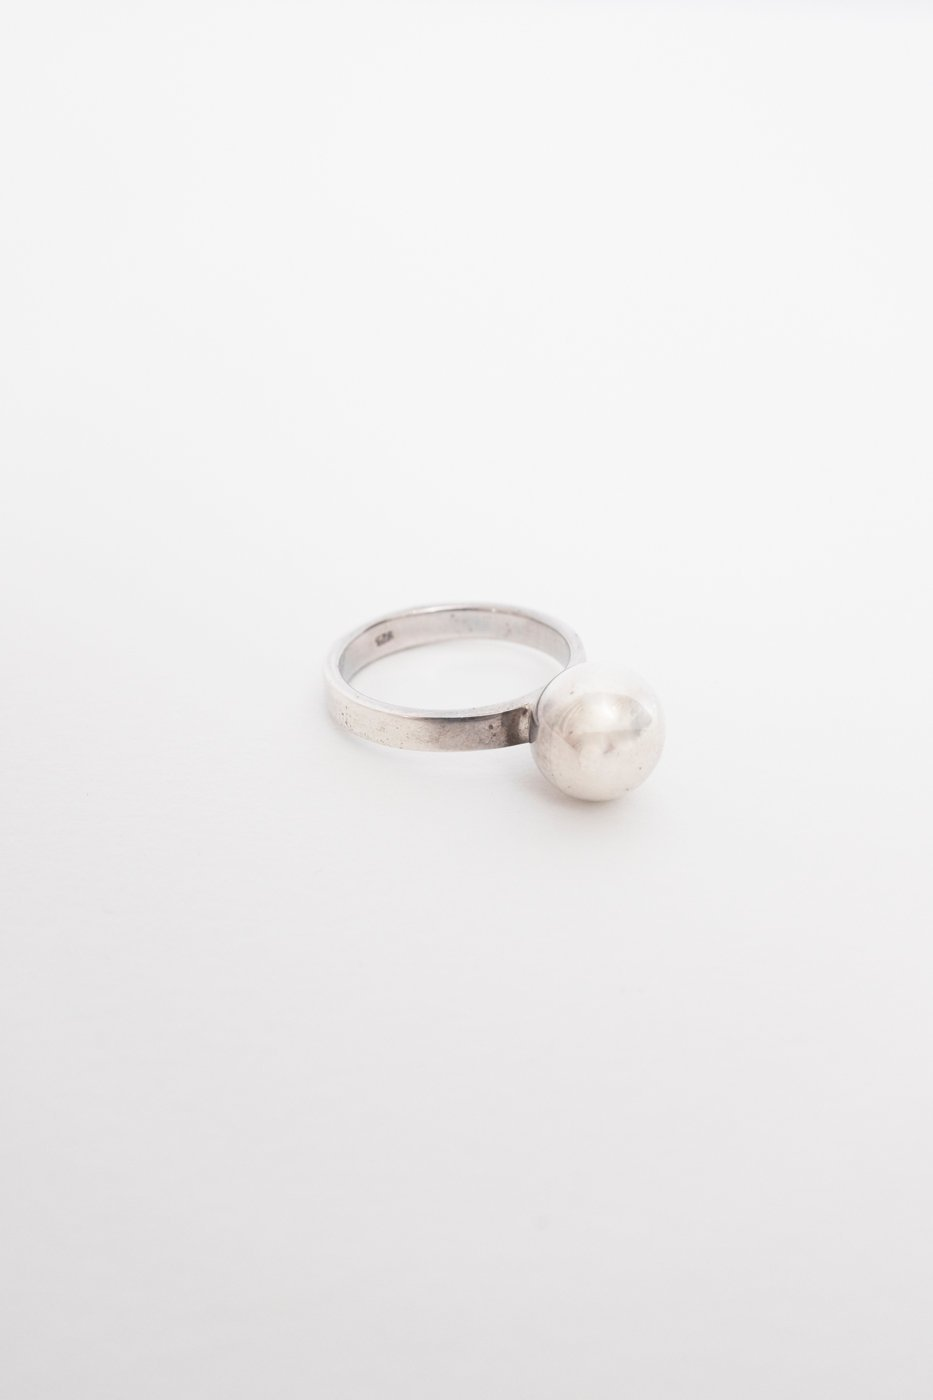 0427_BALL RING STERLING SILVER VINTAGE